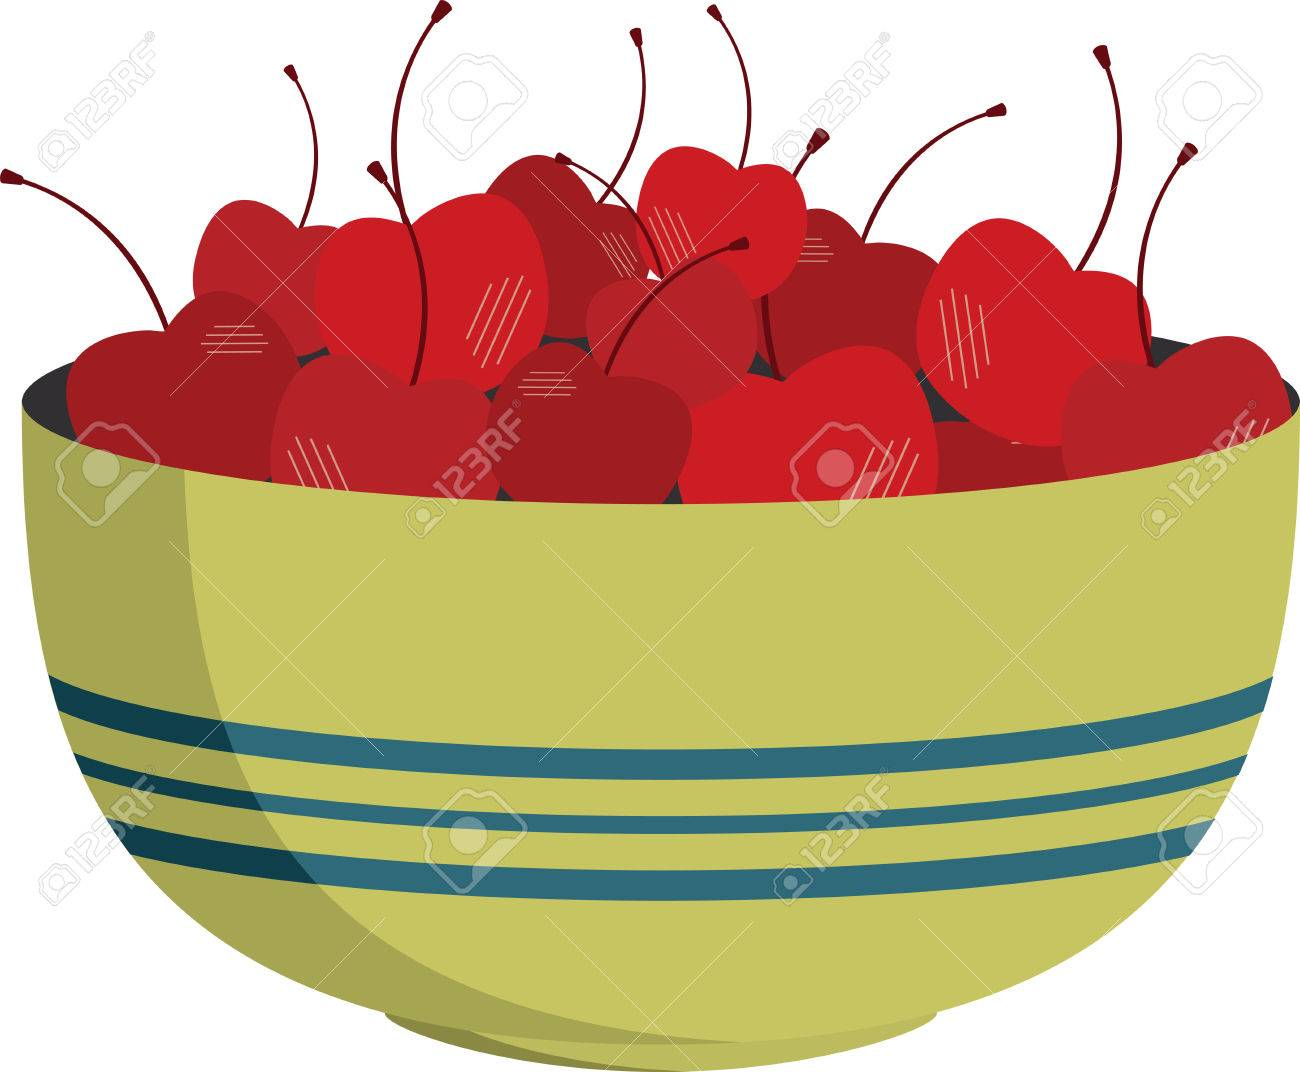 Bowl of shining red cherries for kitchen decorating..